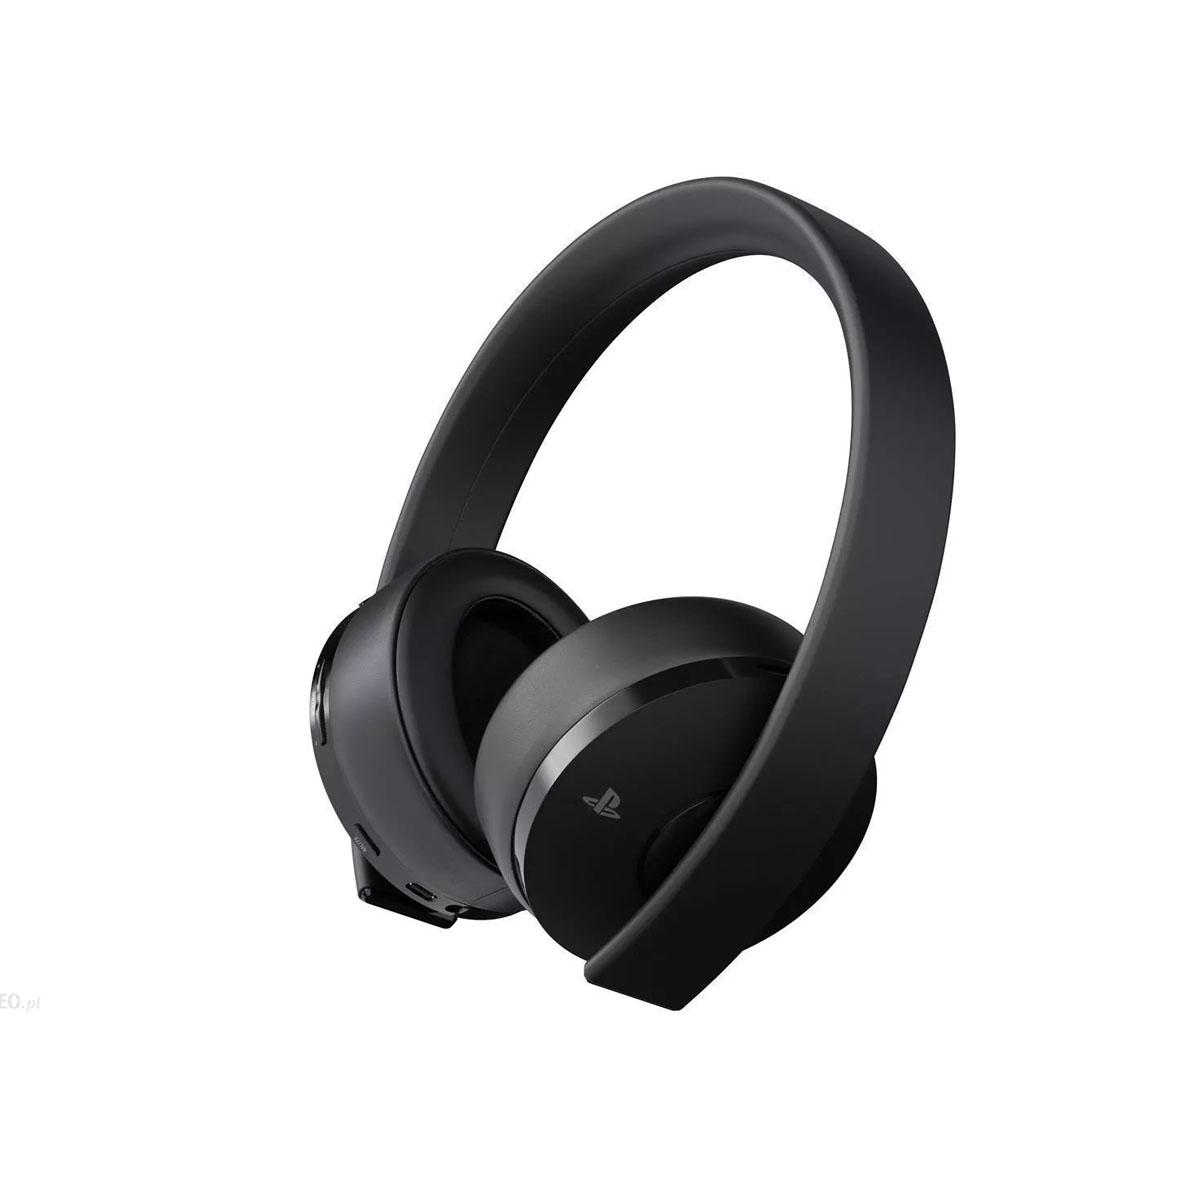 Sony PlayStation 4 Gold Wireless Stereo Headset - Black